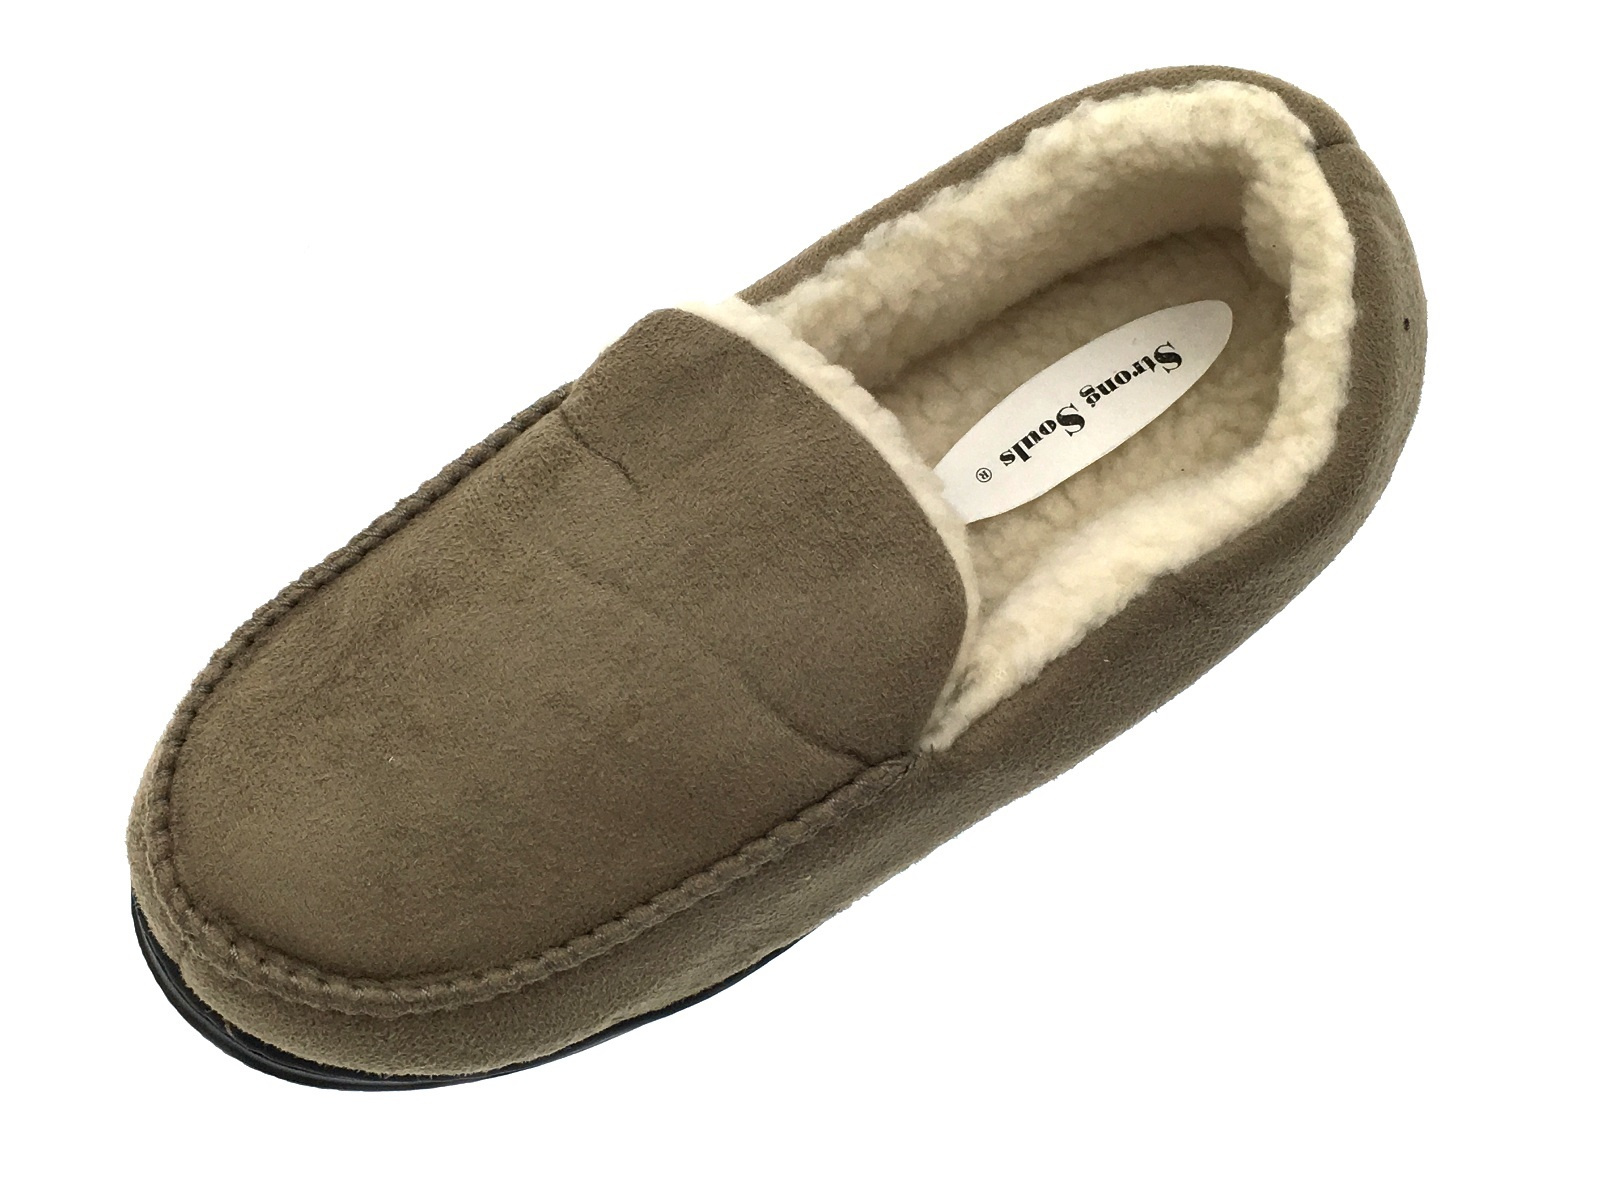 Mens Moccasins Faux Suede Slippers Warm Winter Faux Fur ...